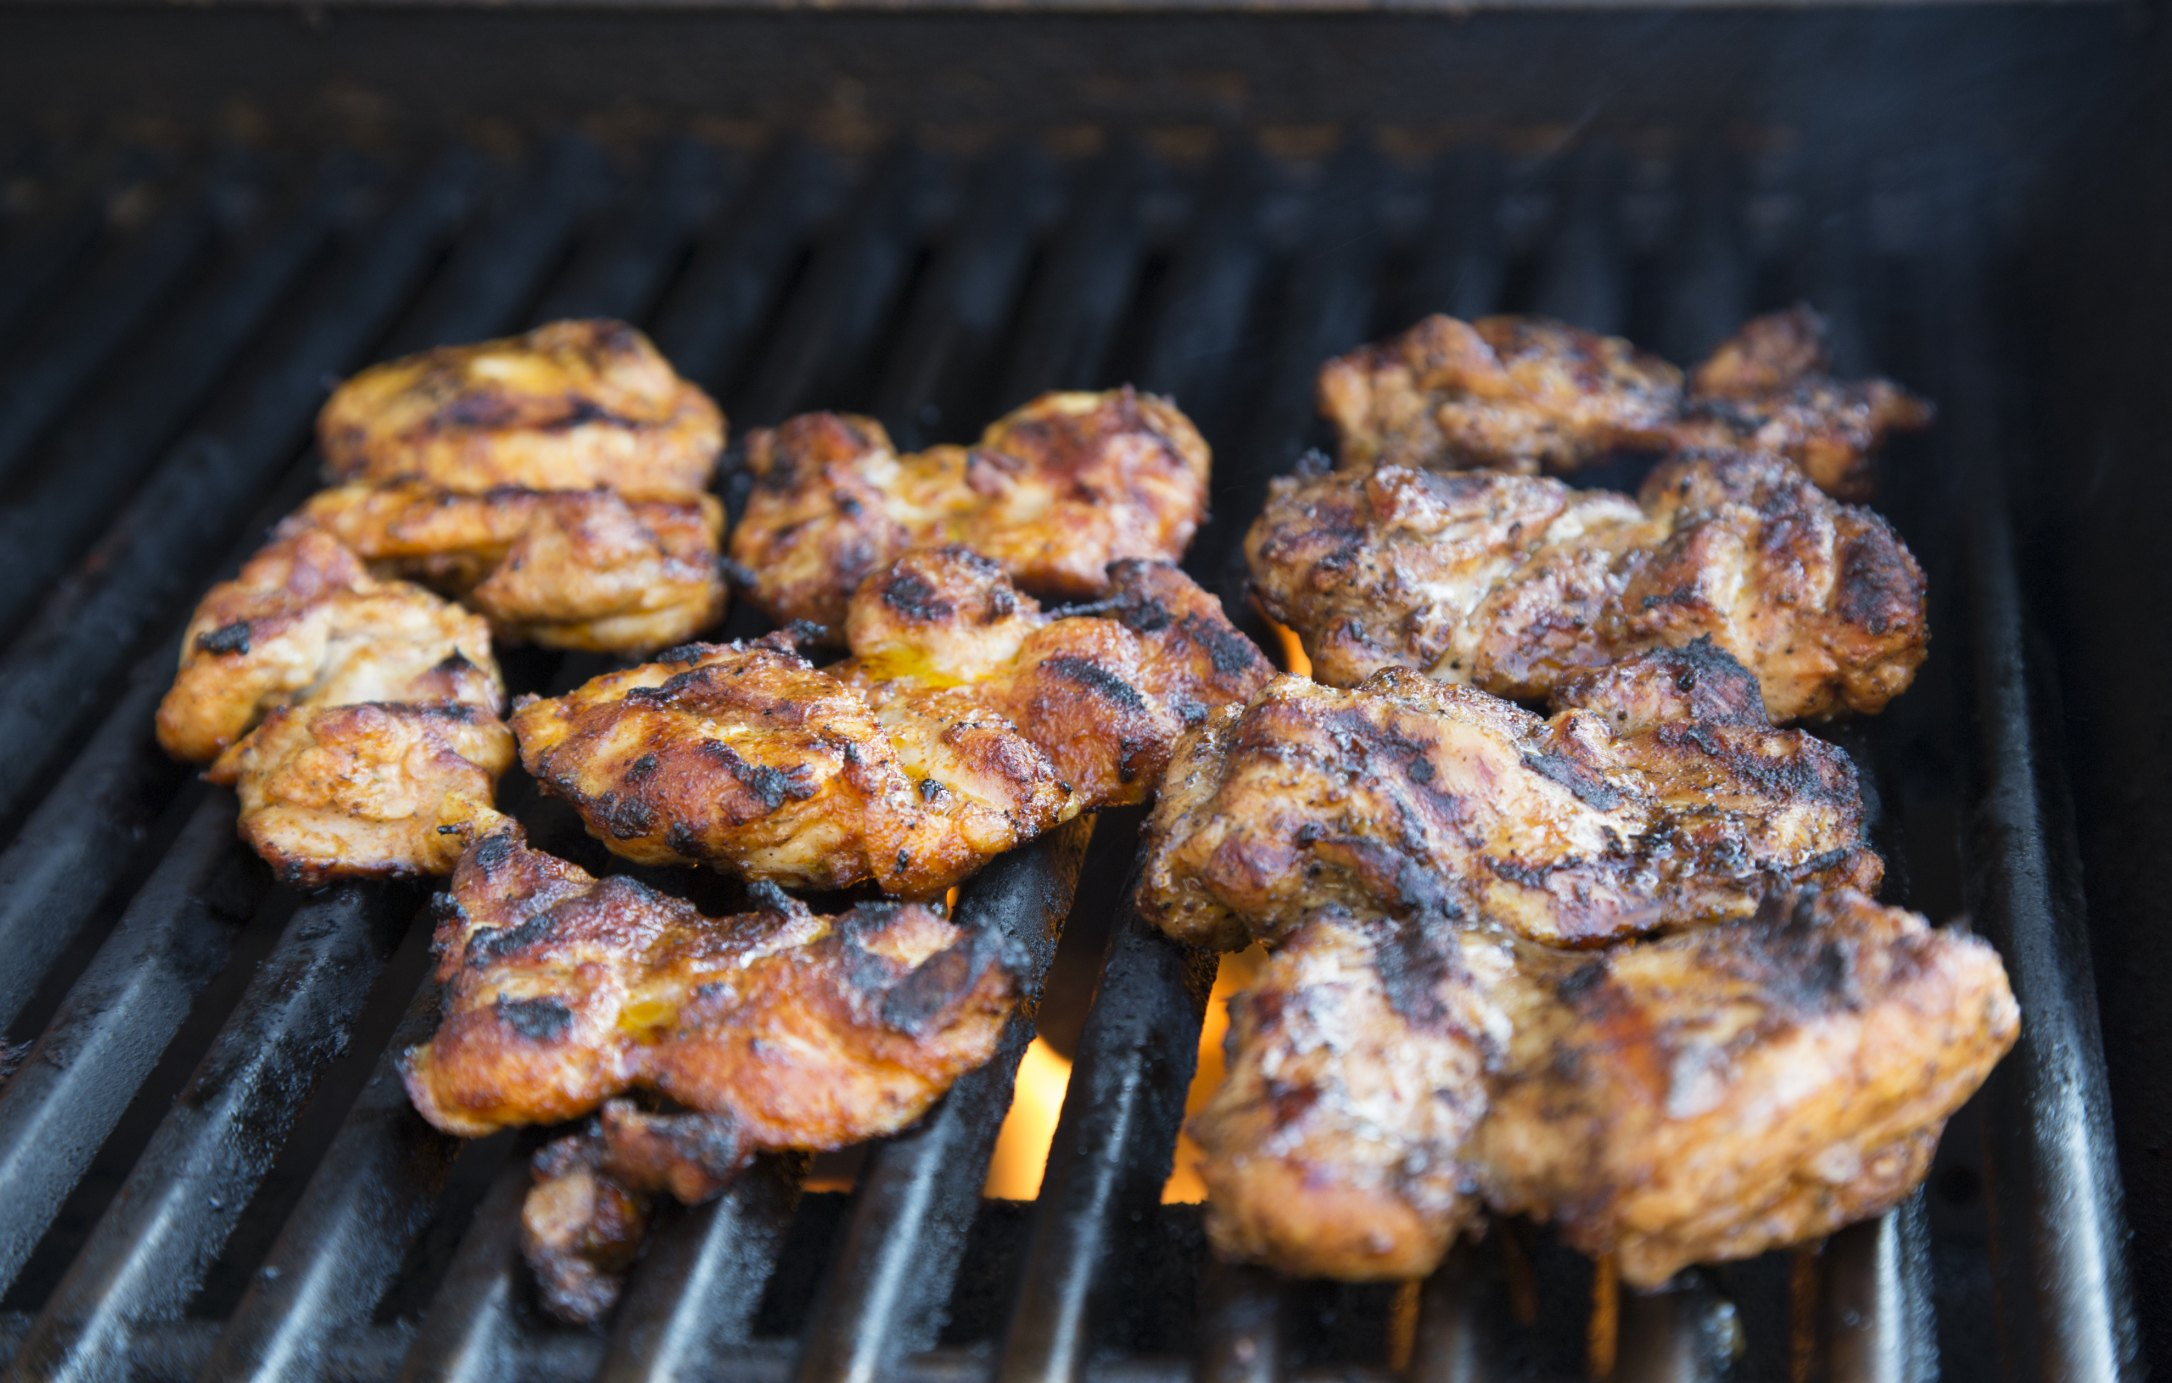 How To Grill Chicken Thighs With The Skin On Ehow